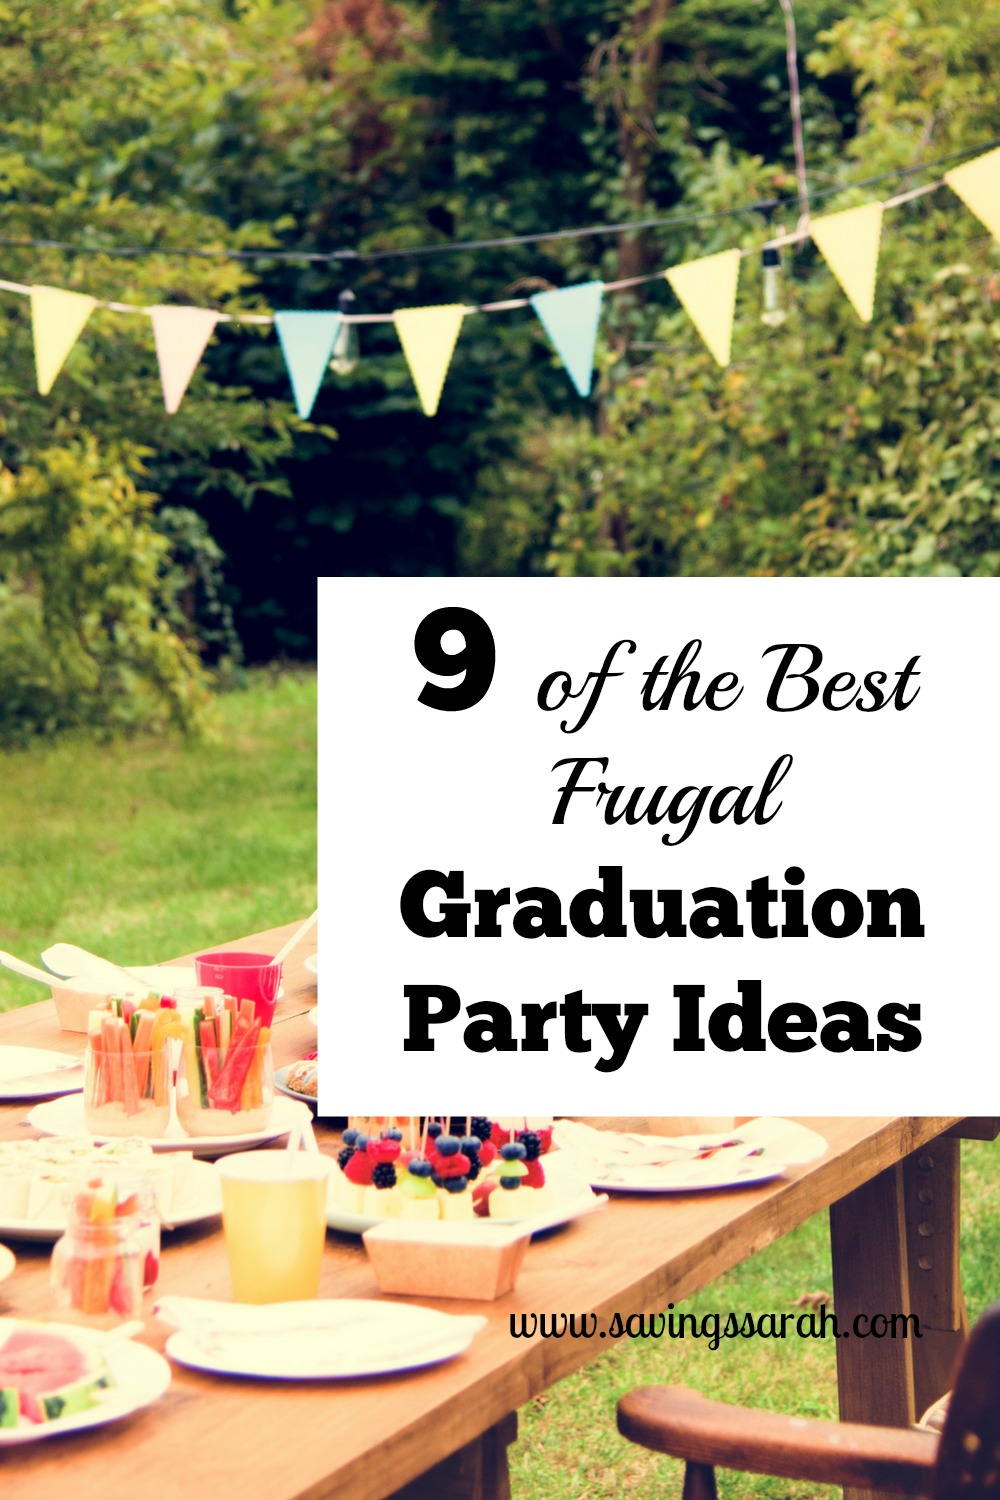 graduation party picture board ideas - 9 the Best Frugal Graduation Party Ideas Earning and